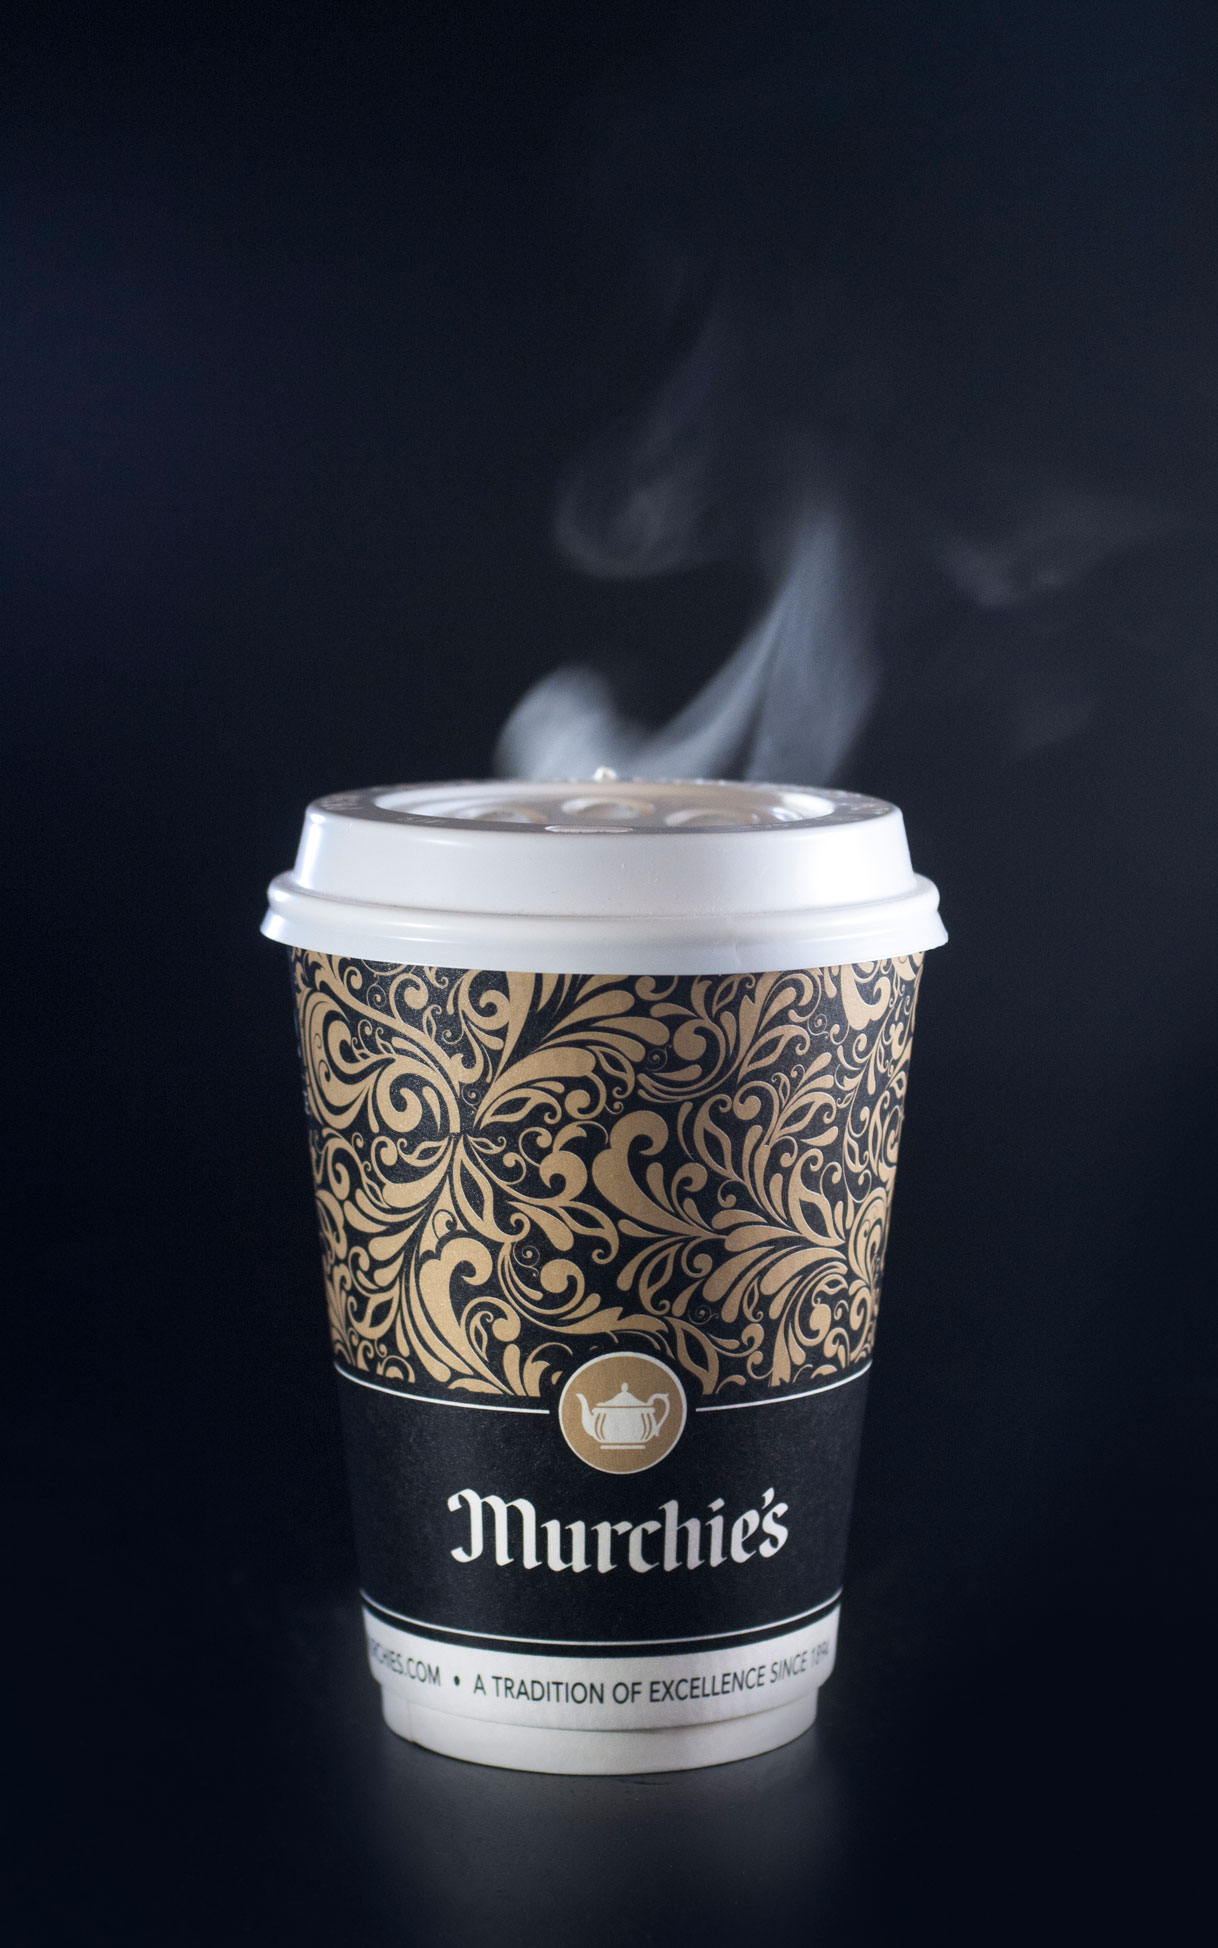 murchie-s cup design